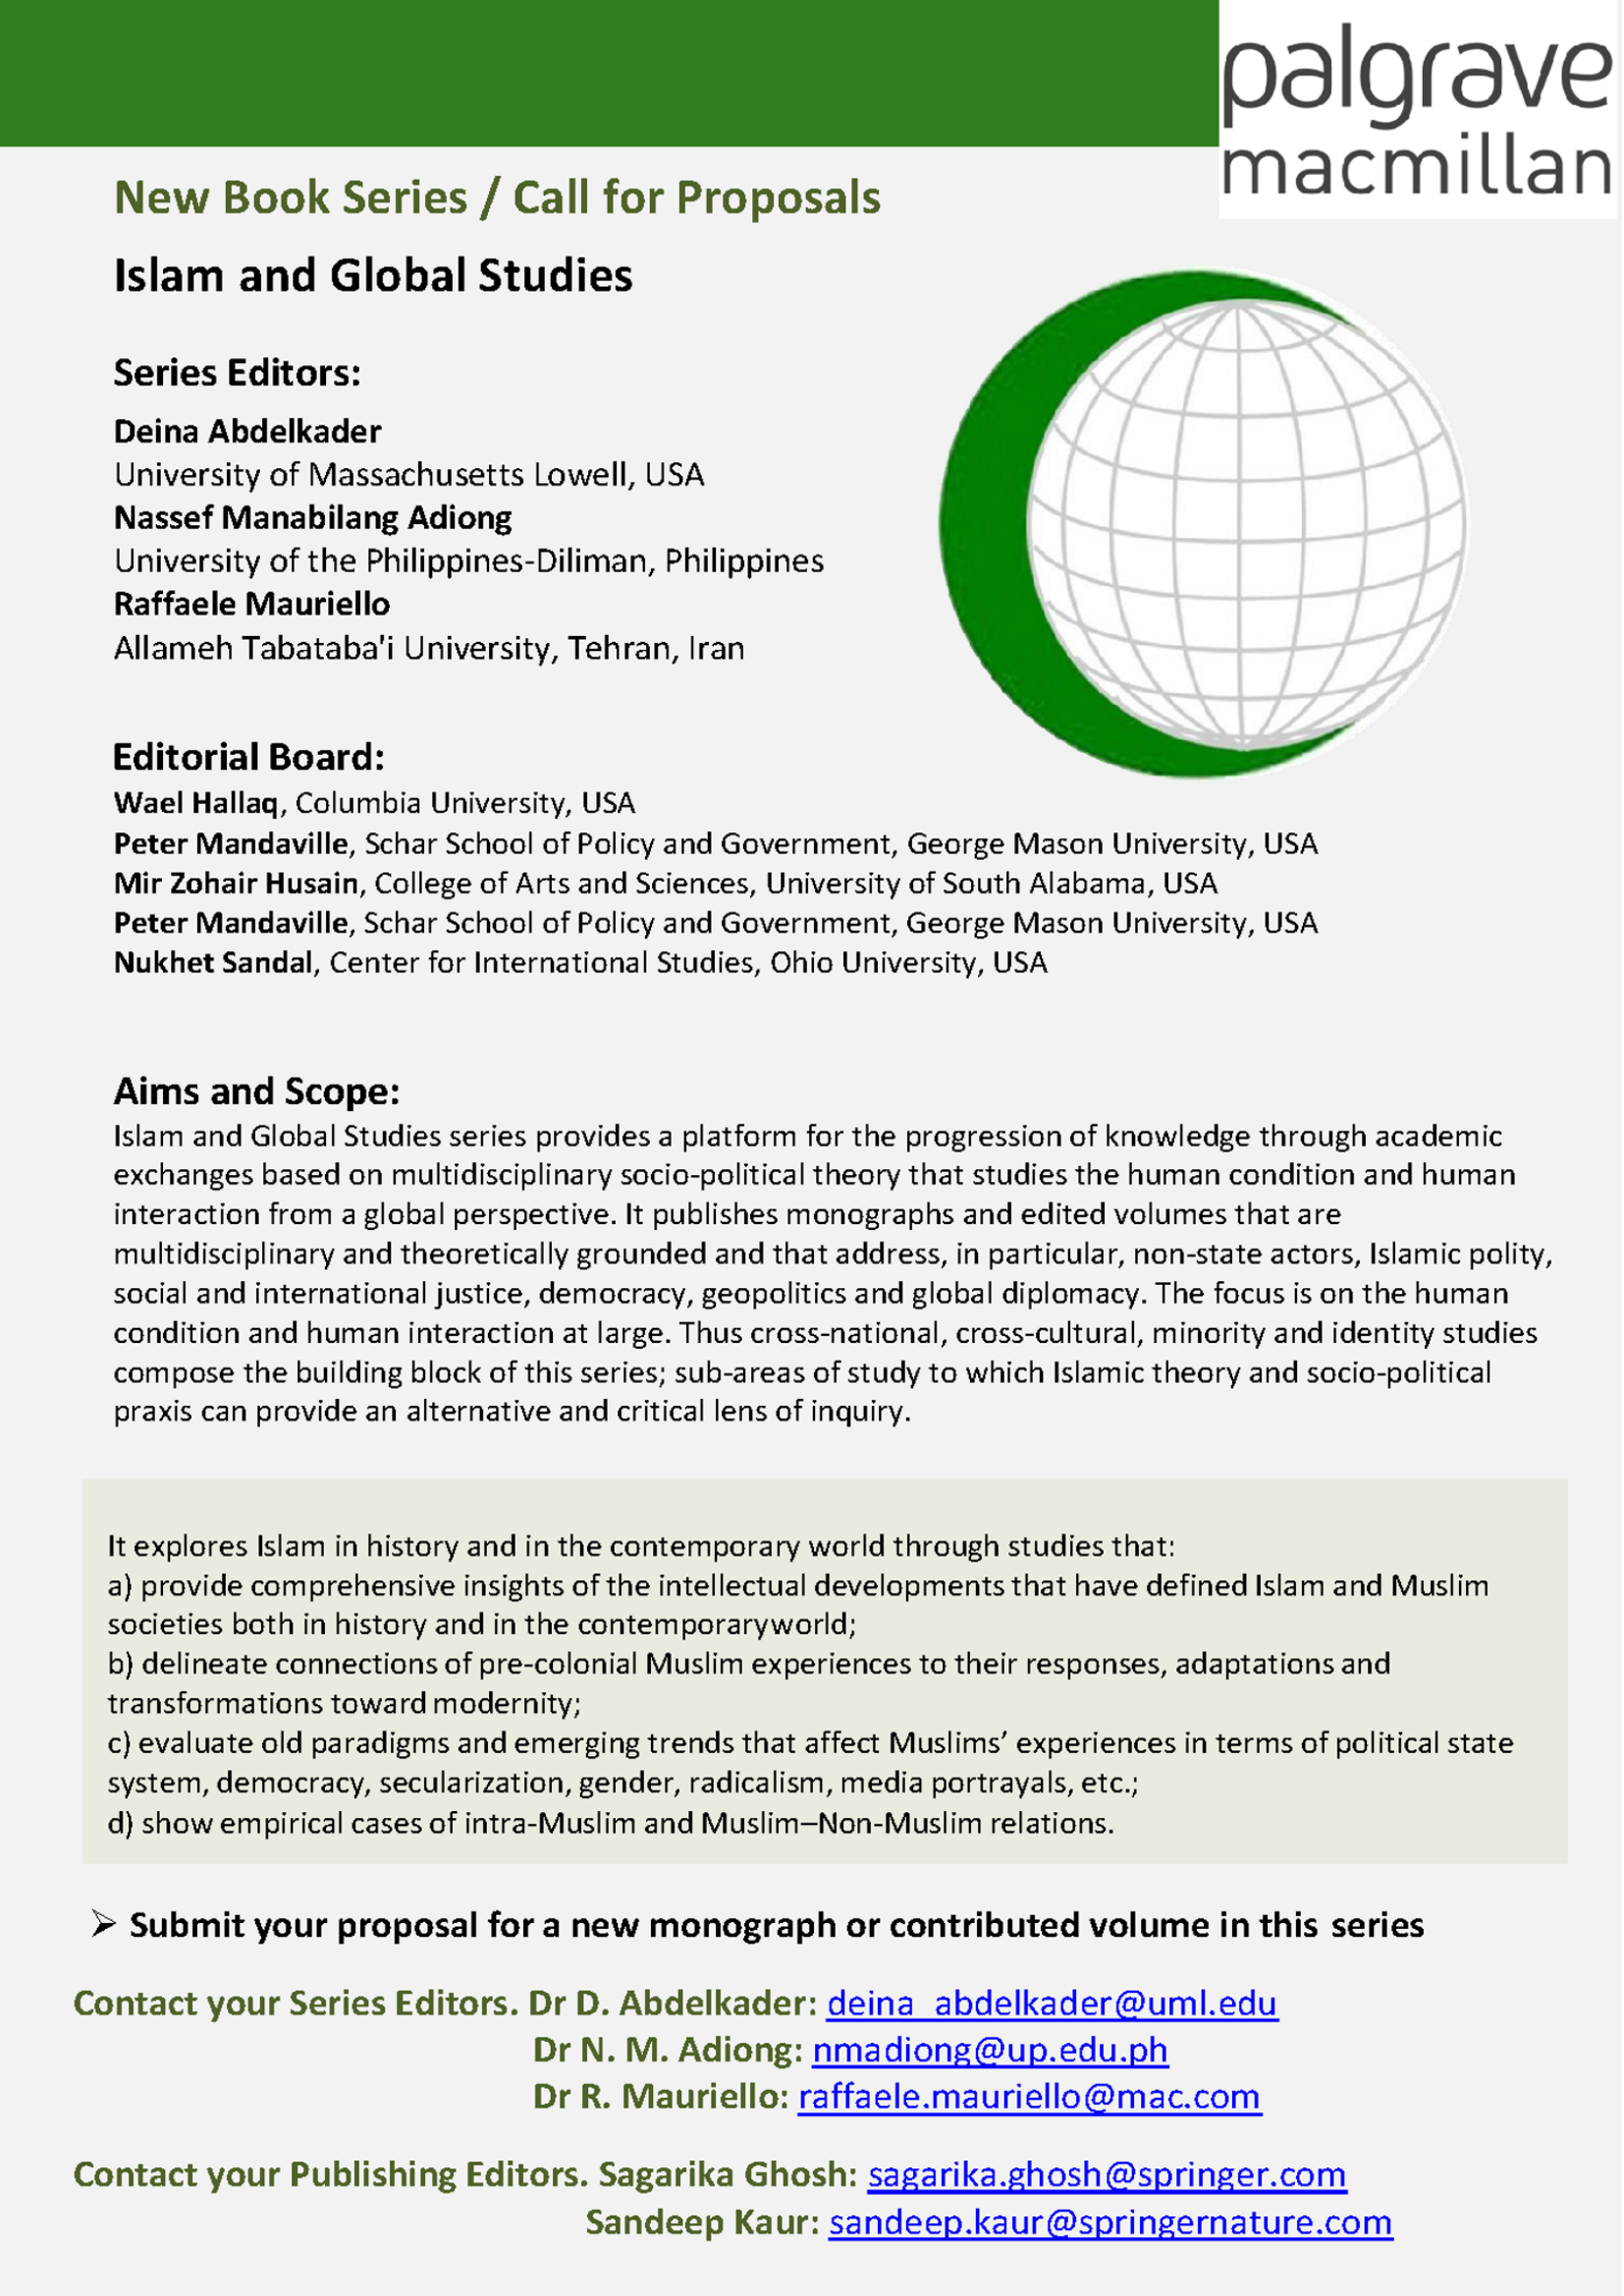 igs-series-flyer-call-for-papers-no-cover1